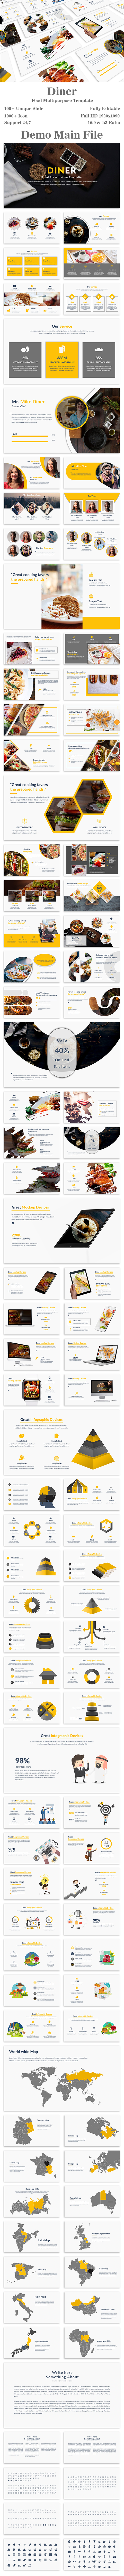 Diner Food Multipurpose Google Slide Template - Google Slides Presentation Templates